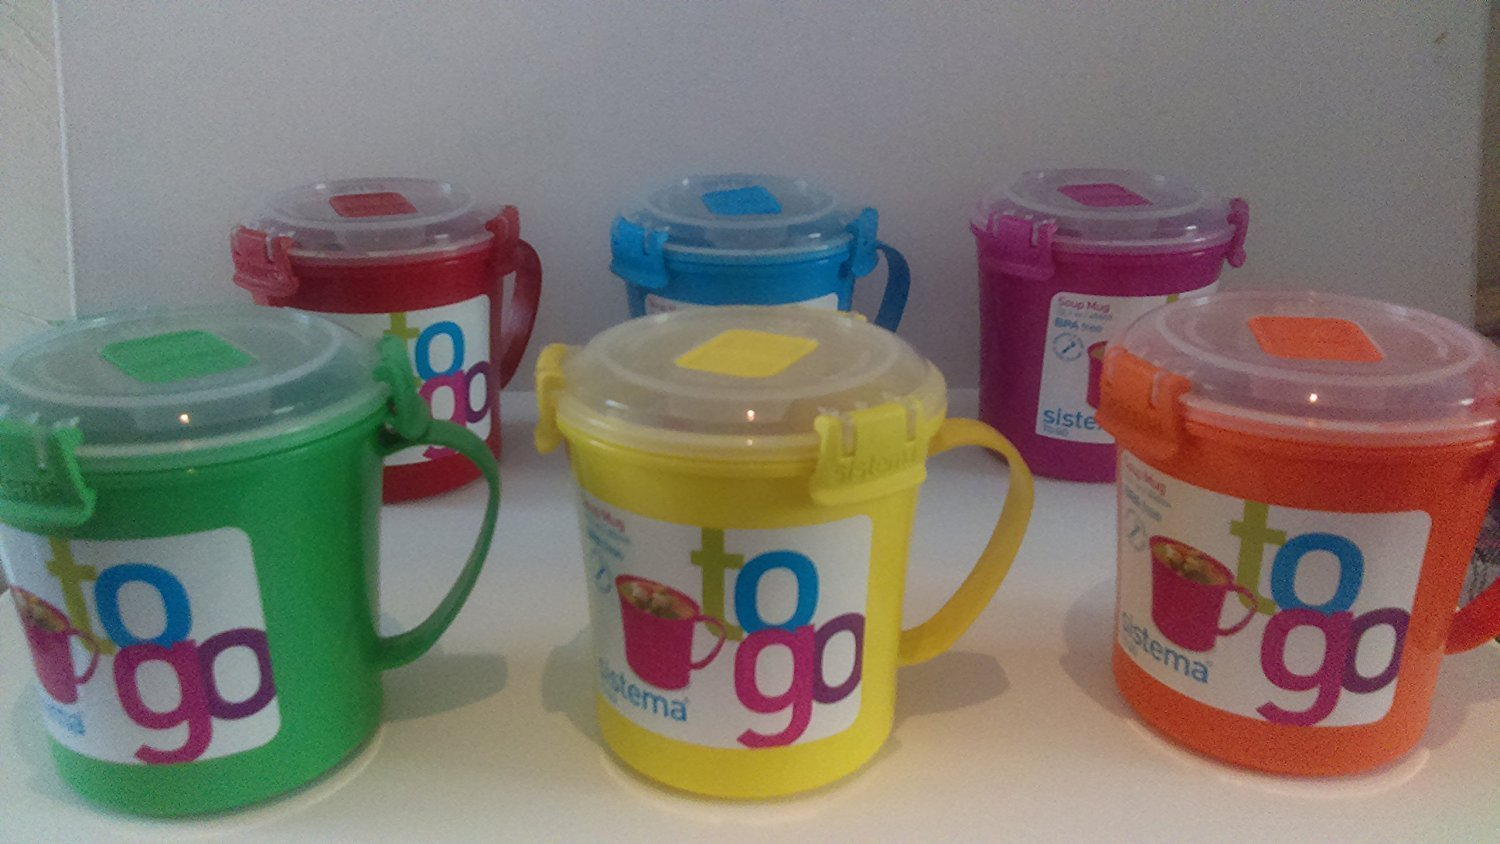 Sistema To Go Mugs 22.1 oz 6 Pack (Yellow, Green, Orange, Pink, Blue and Red)